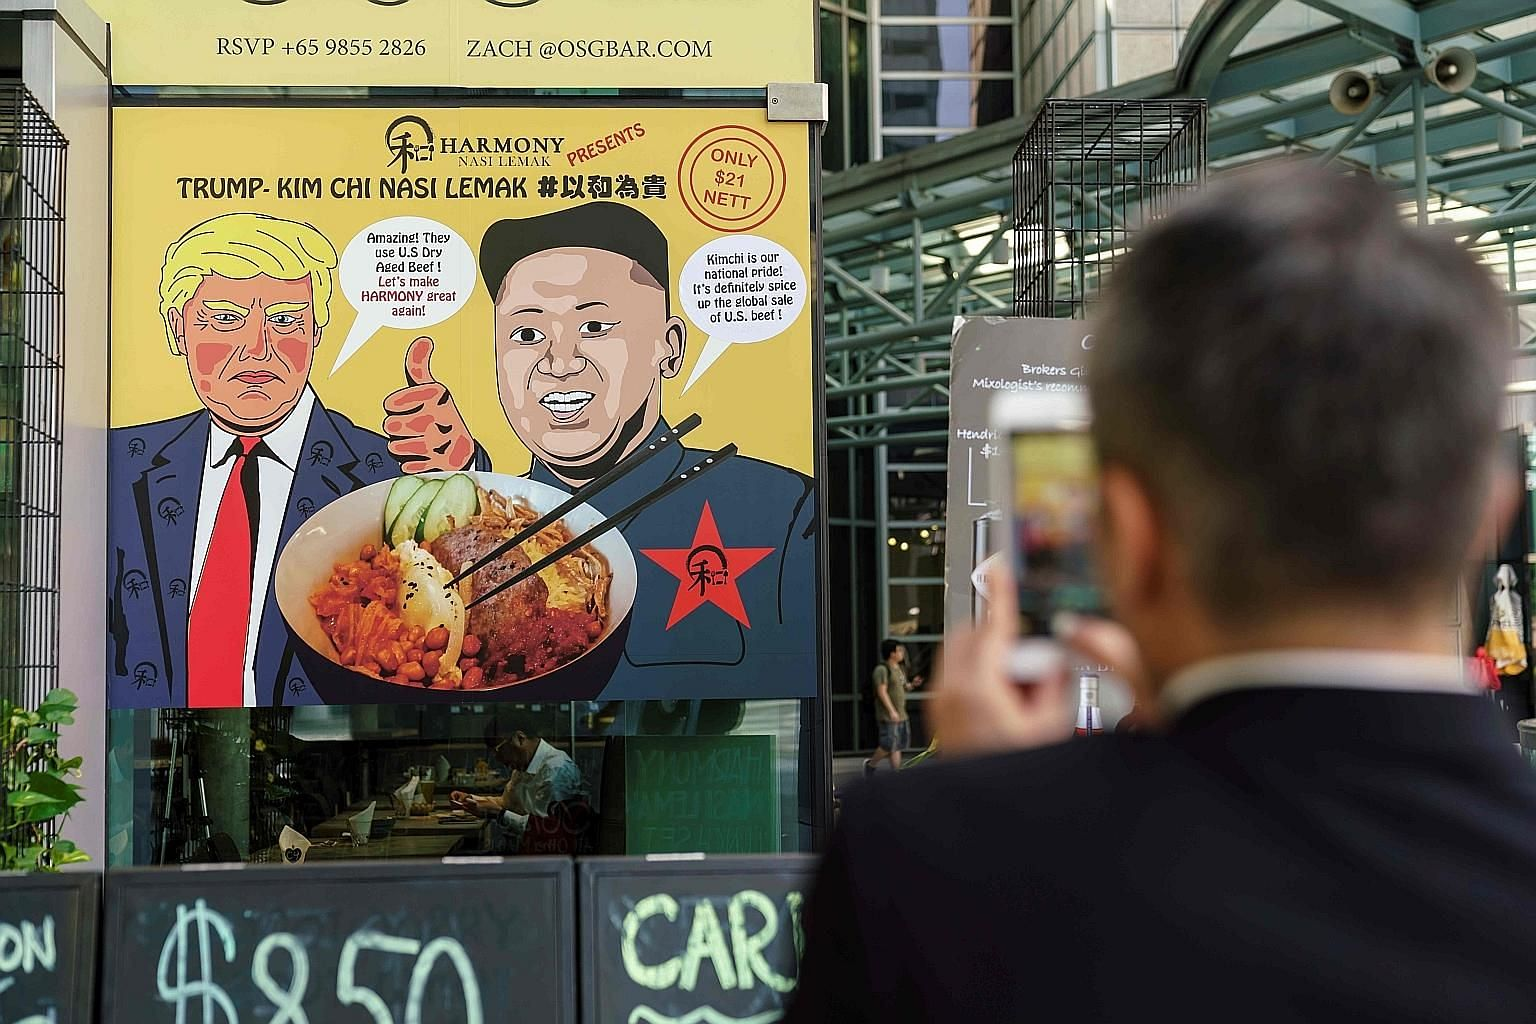 Tycoon Robert Kuok's Shangri-La Hotel in Singapore is heavily tipped to host President Donald Trump and his delegation. A restaurant poster offering a Trump-Kim Chi nasi lemak special in Singapore. From El Trumpo and Rocket Man tacos to Bromance cock